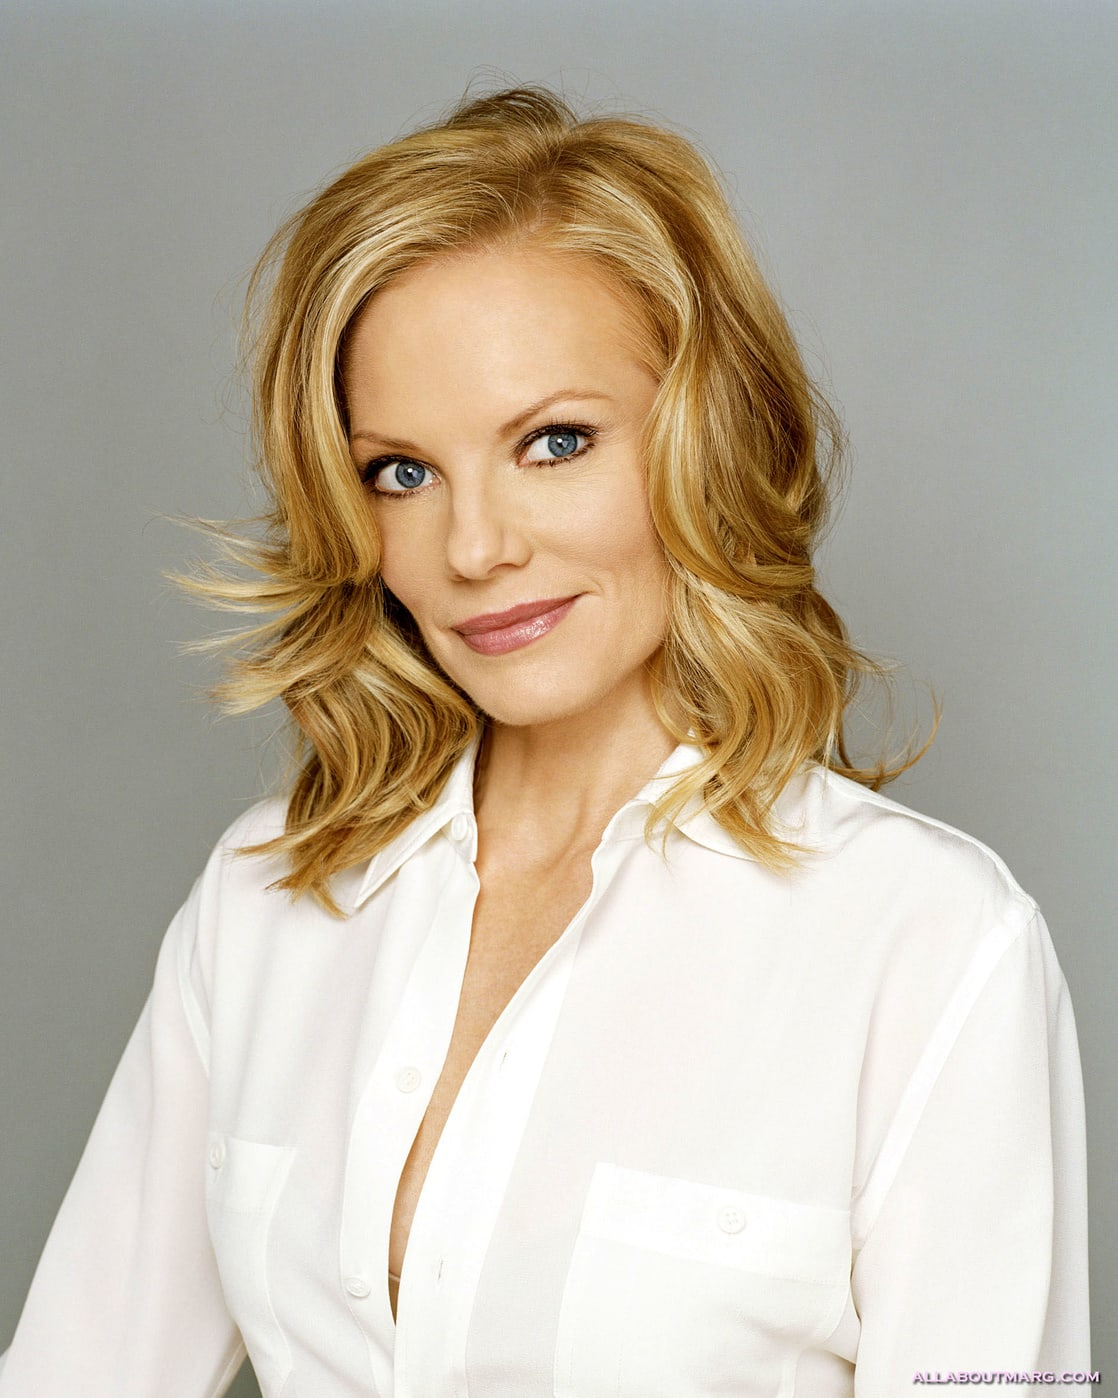 49 Hot Pictures Of Marg Helgenberger Which Will Keep You -9626